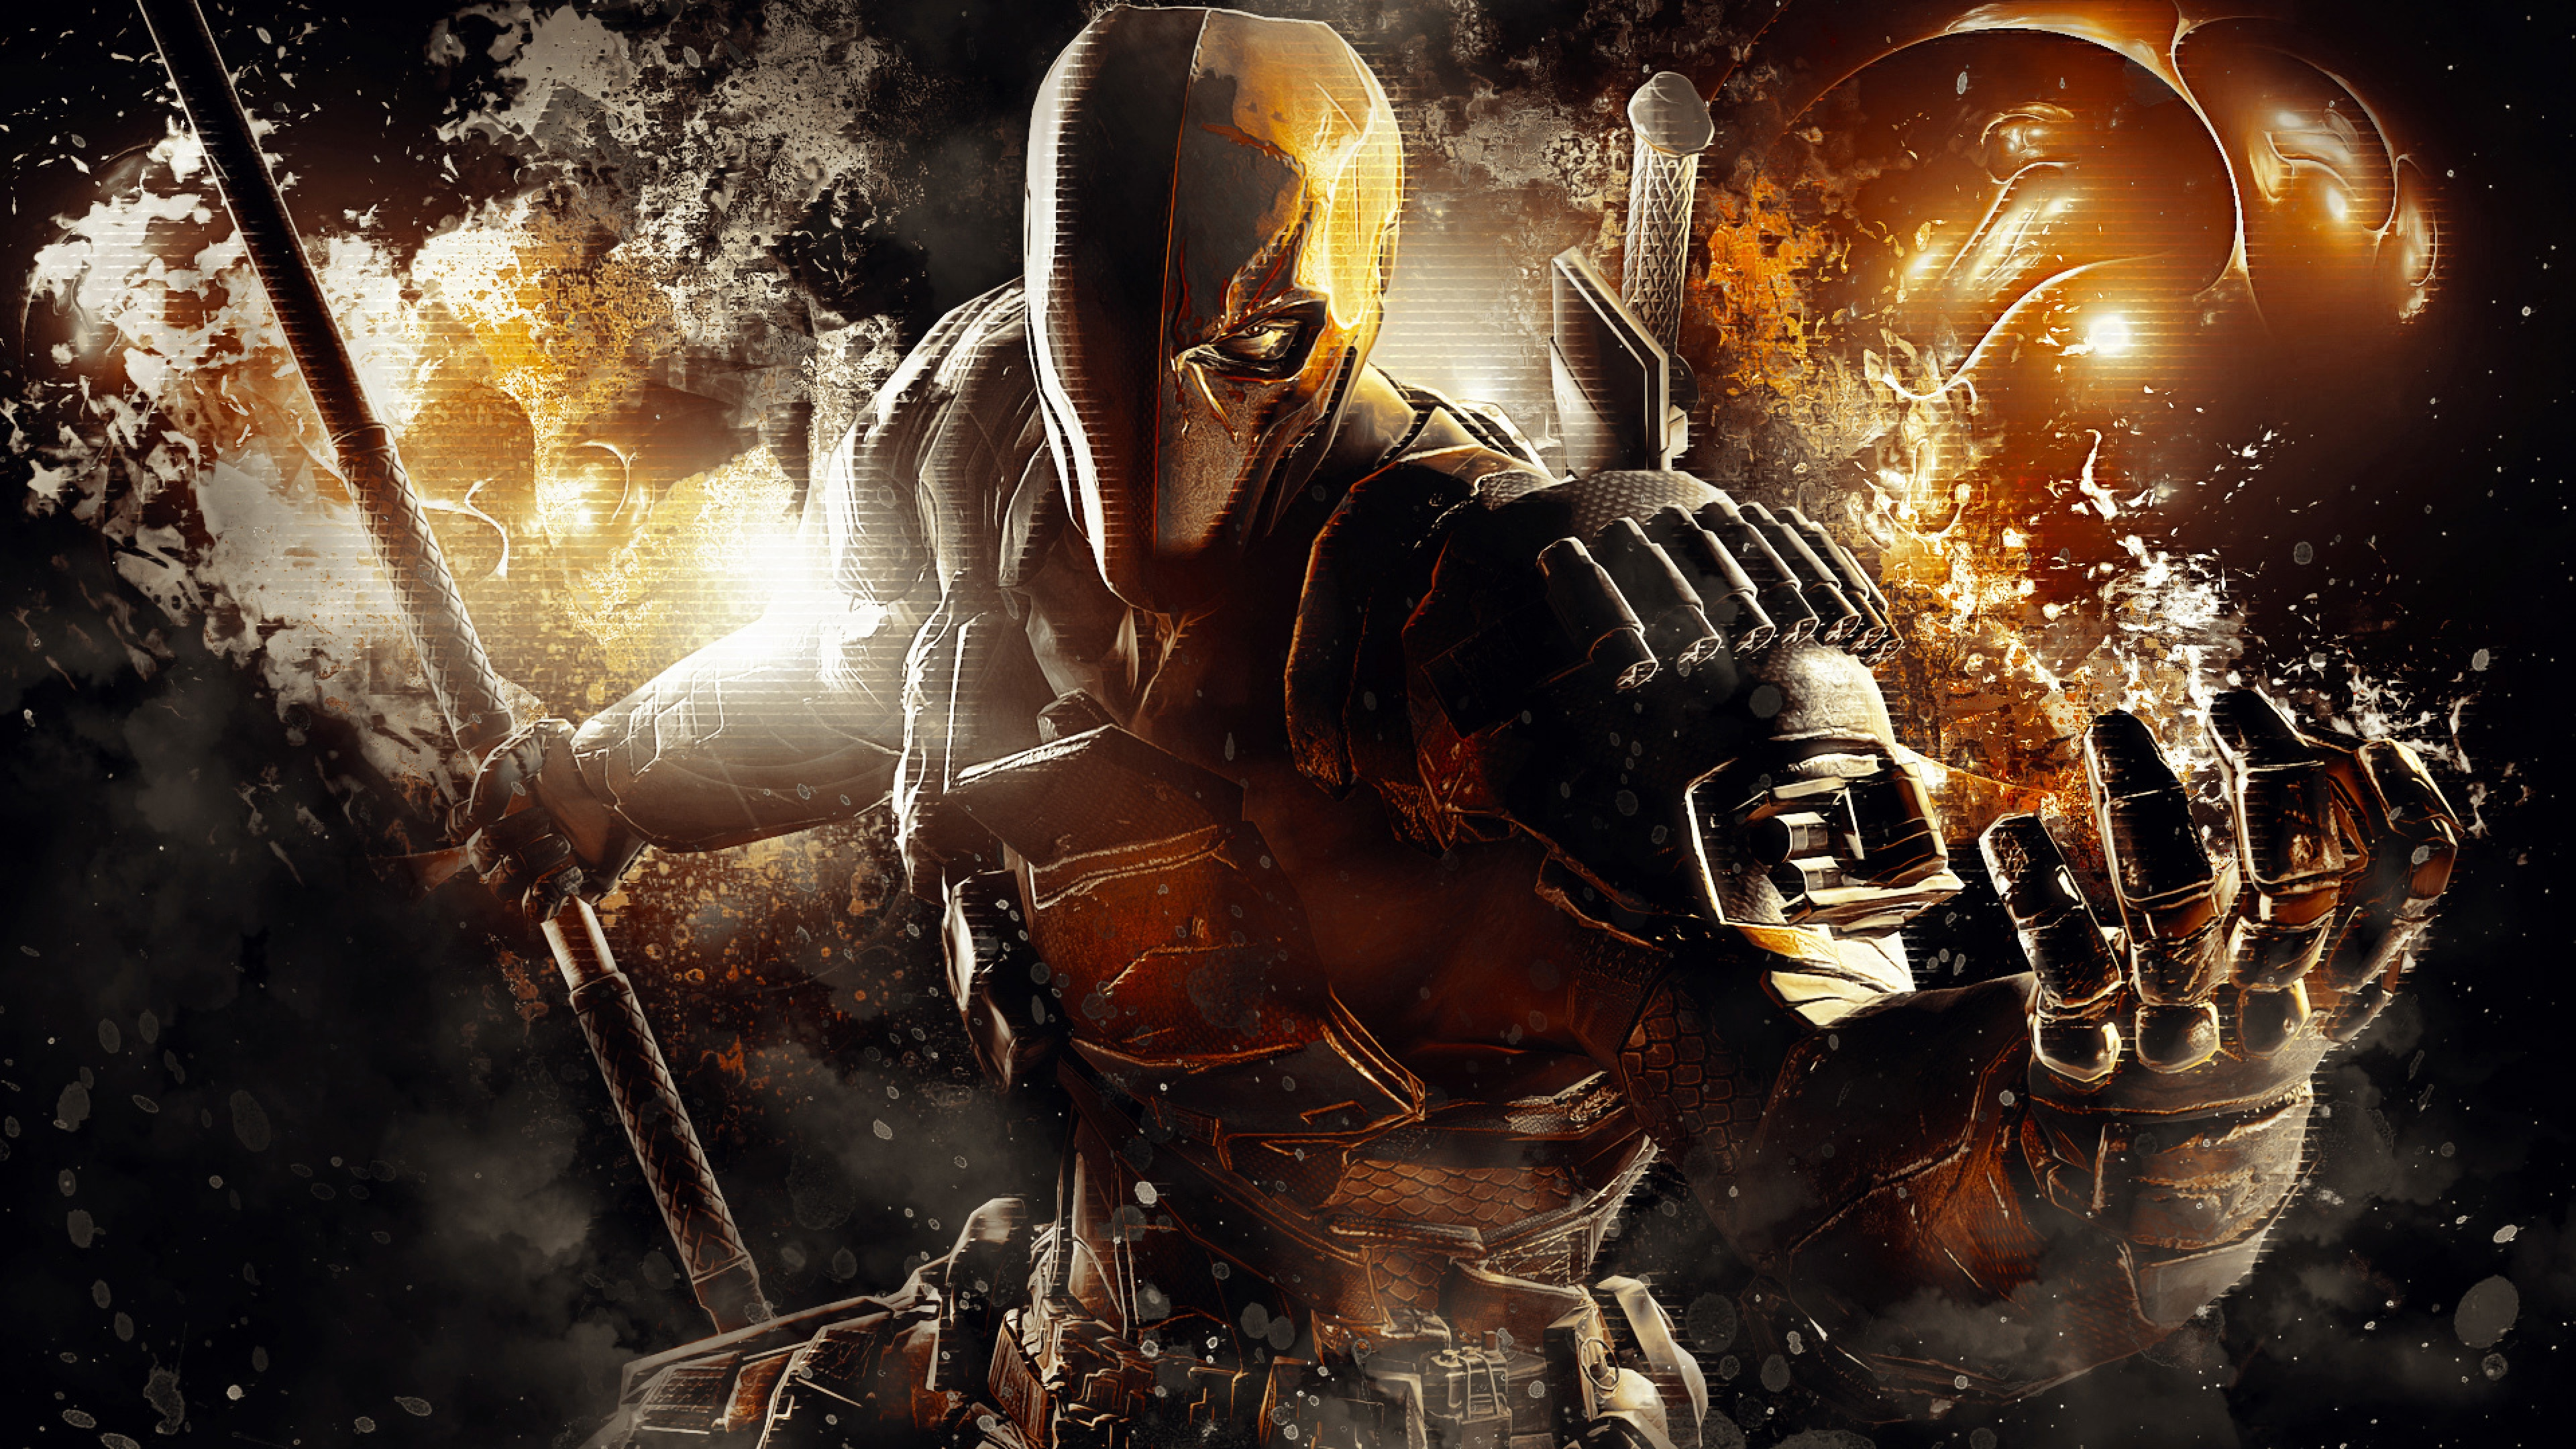 Gaming Wallpapers HD Full HD Pictures 3840x2160